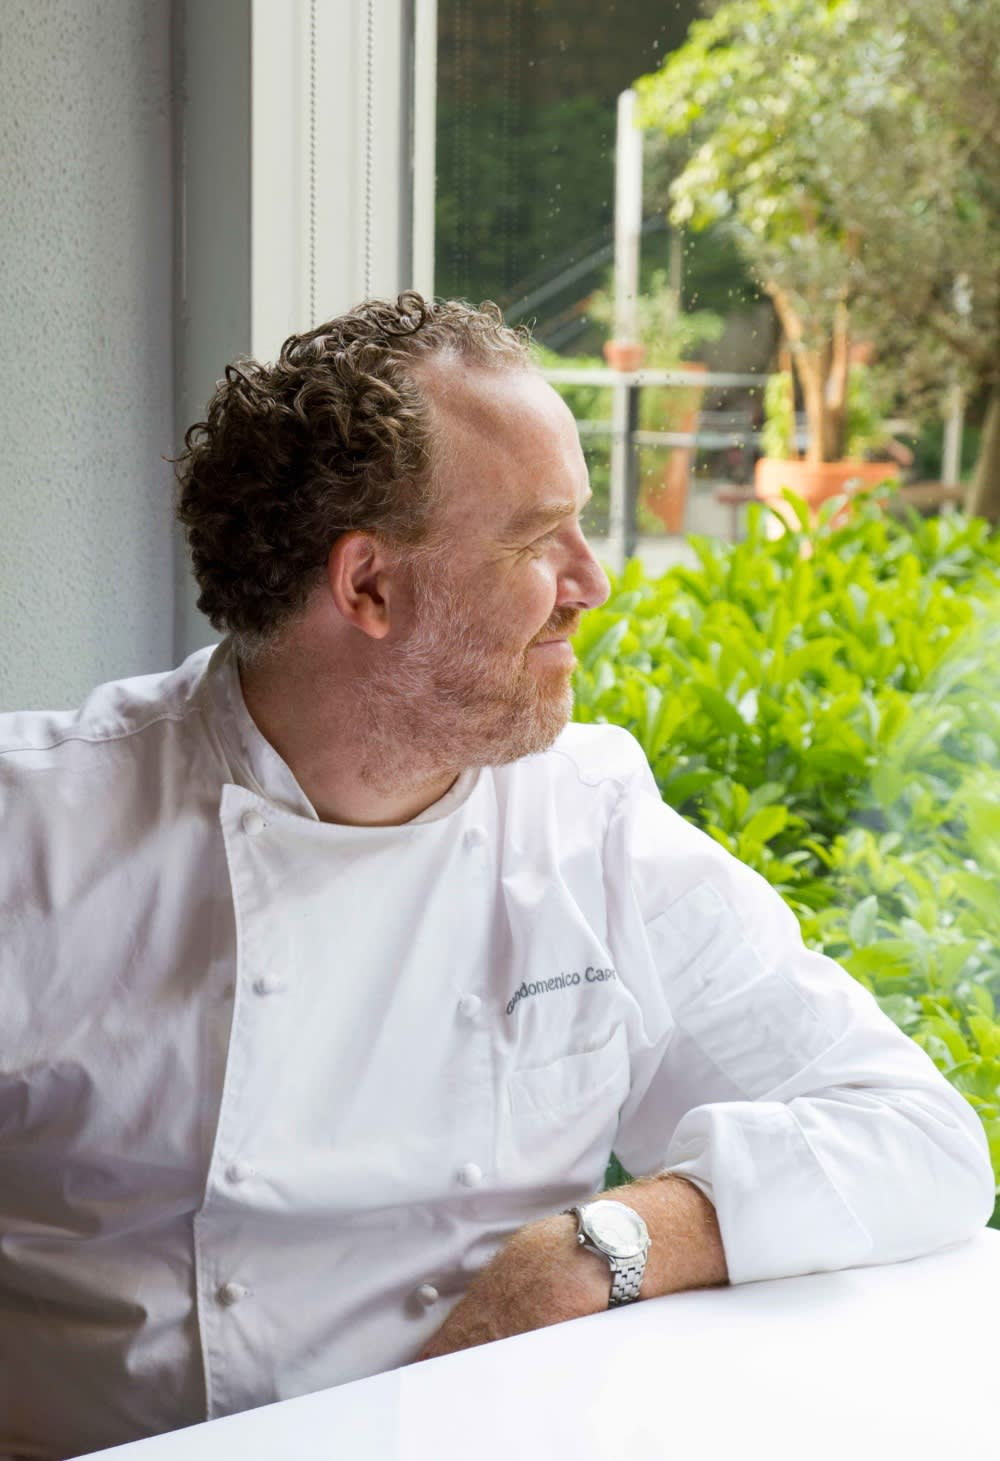 Chef Gianni Caprioli